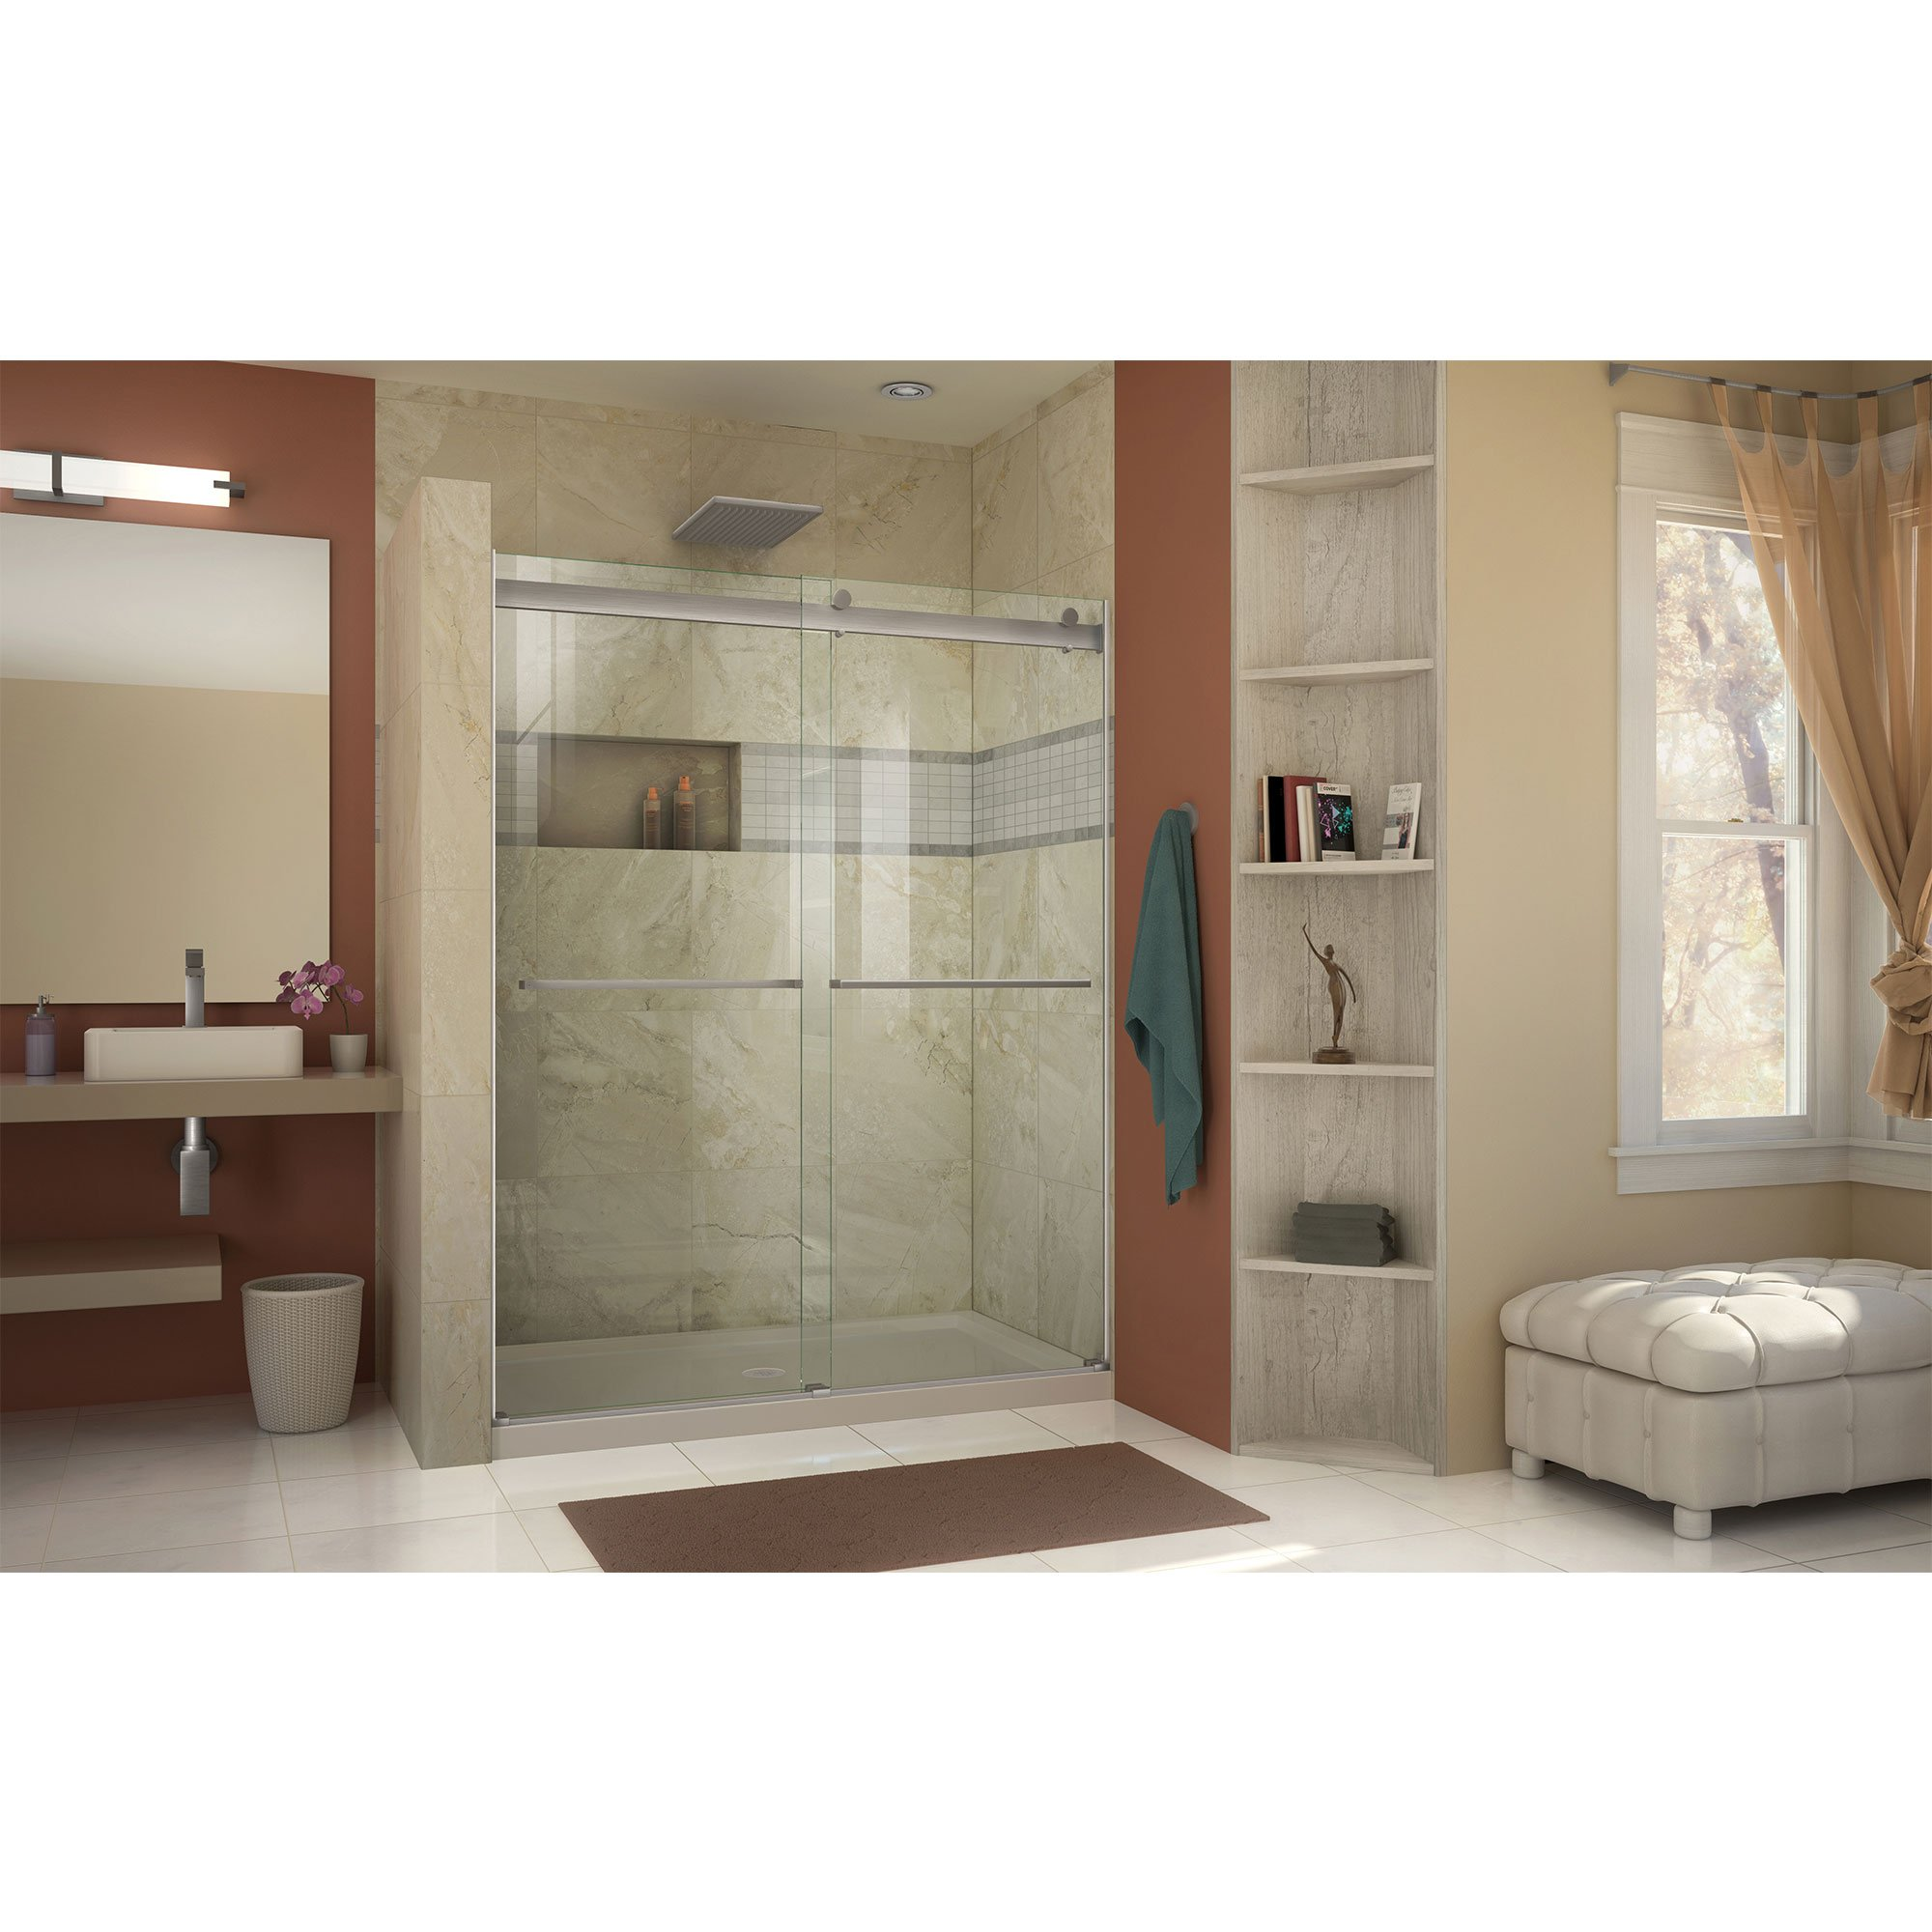 DreamLine SHDR-6360760-04  Essence 56 to 60 in. Frameless Bypass Shower Door in Brushed Nickel Finish by DreamLine (Image #7)